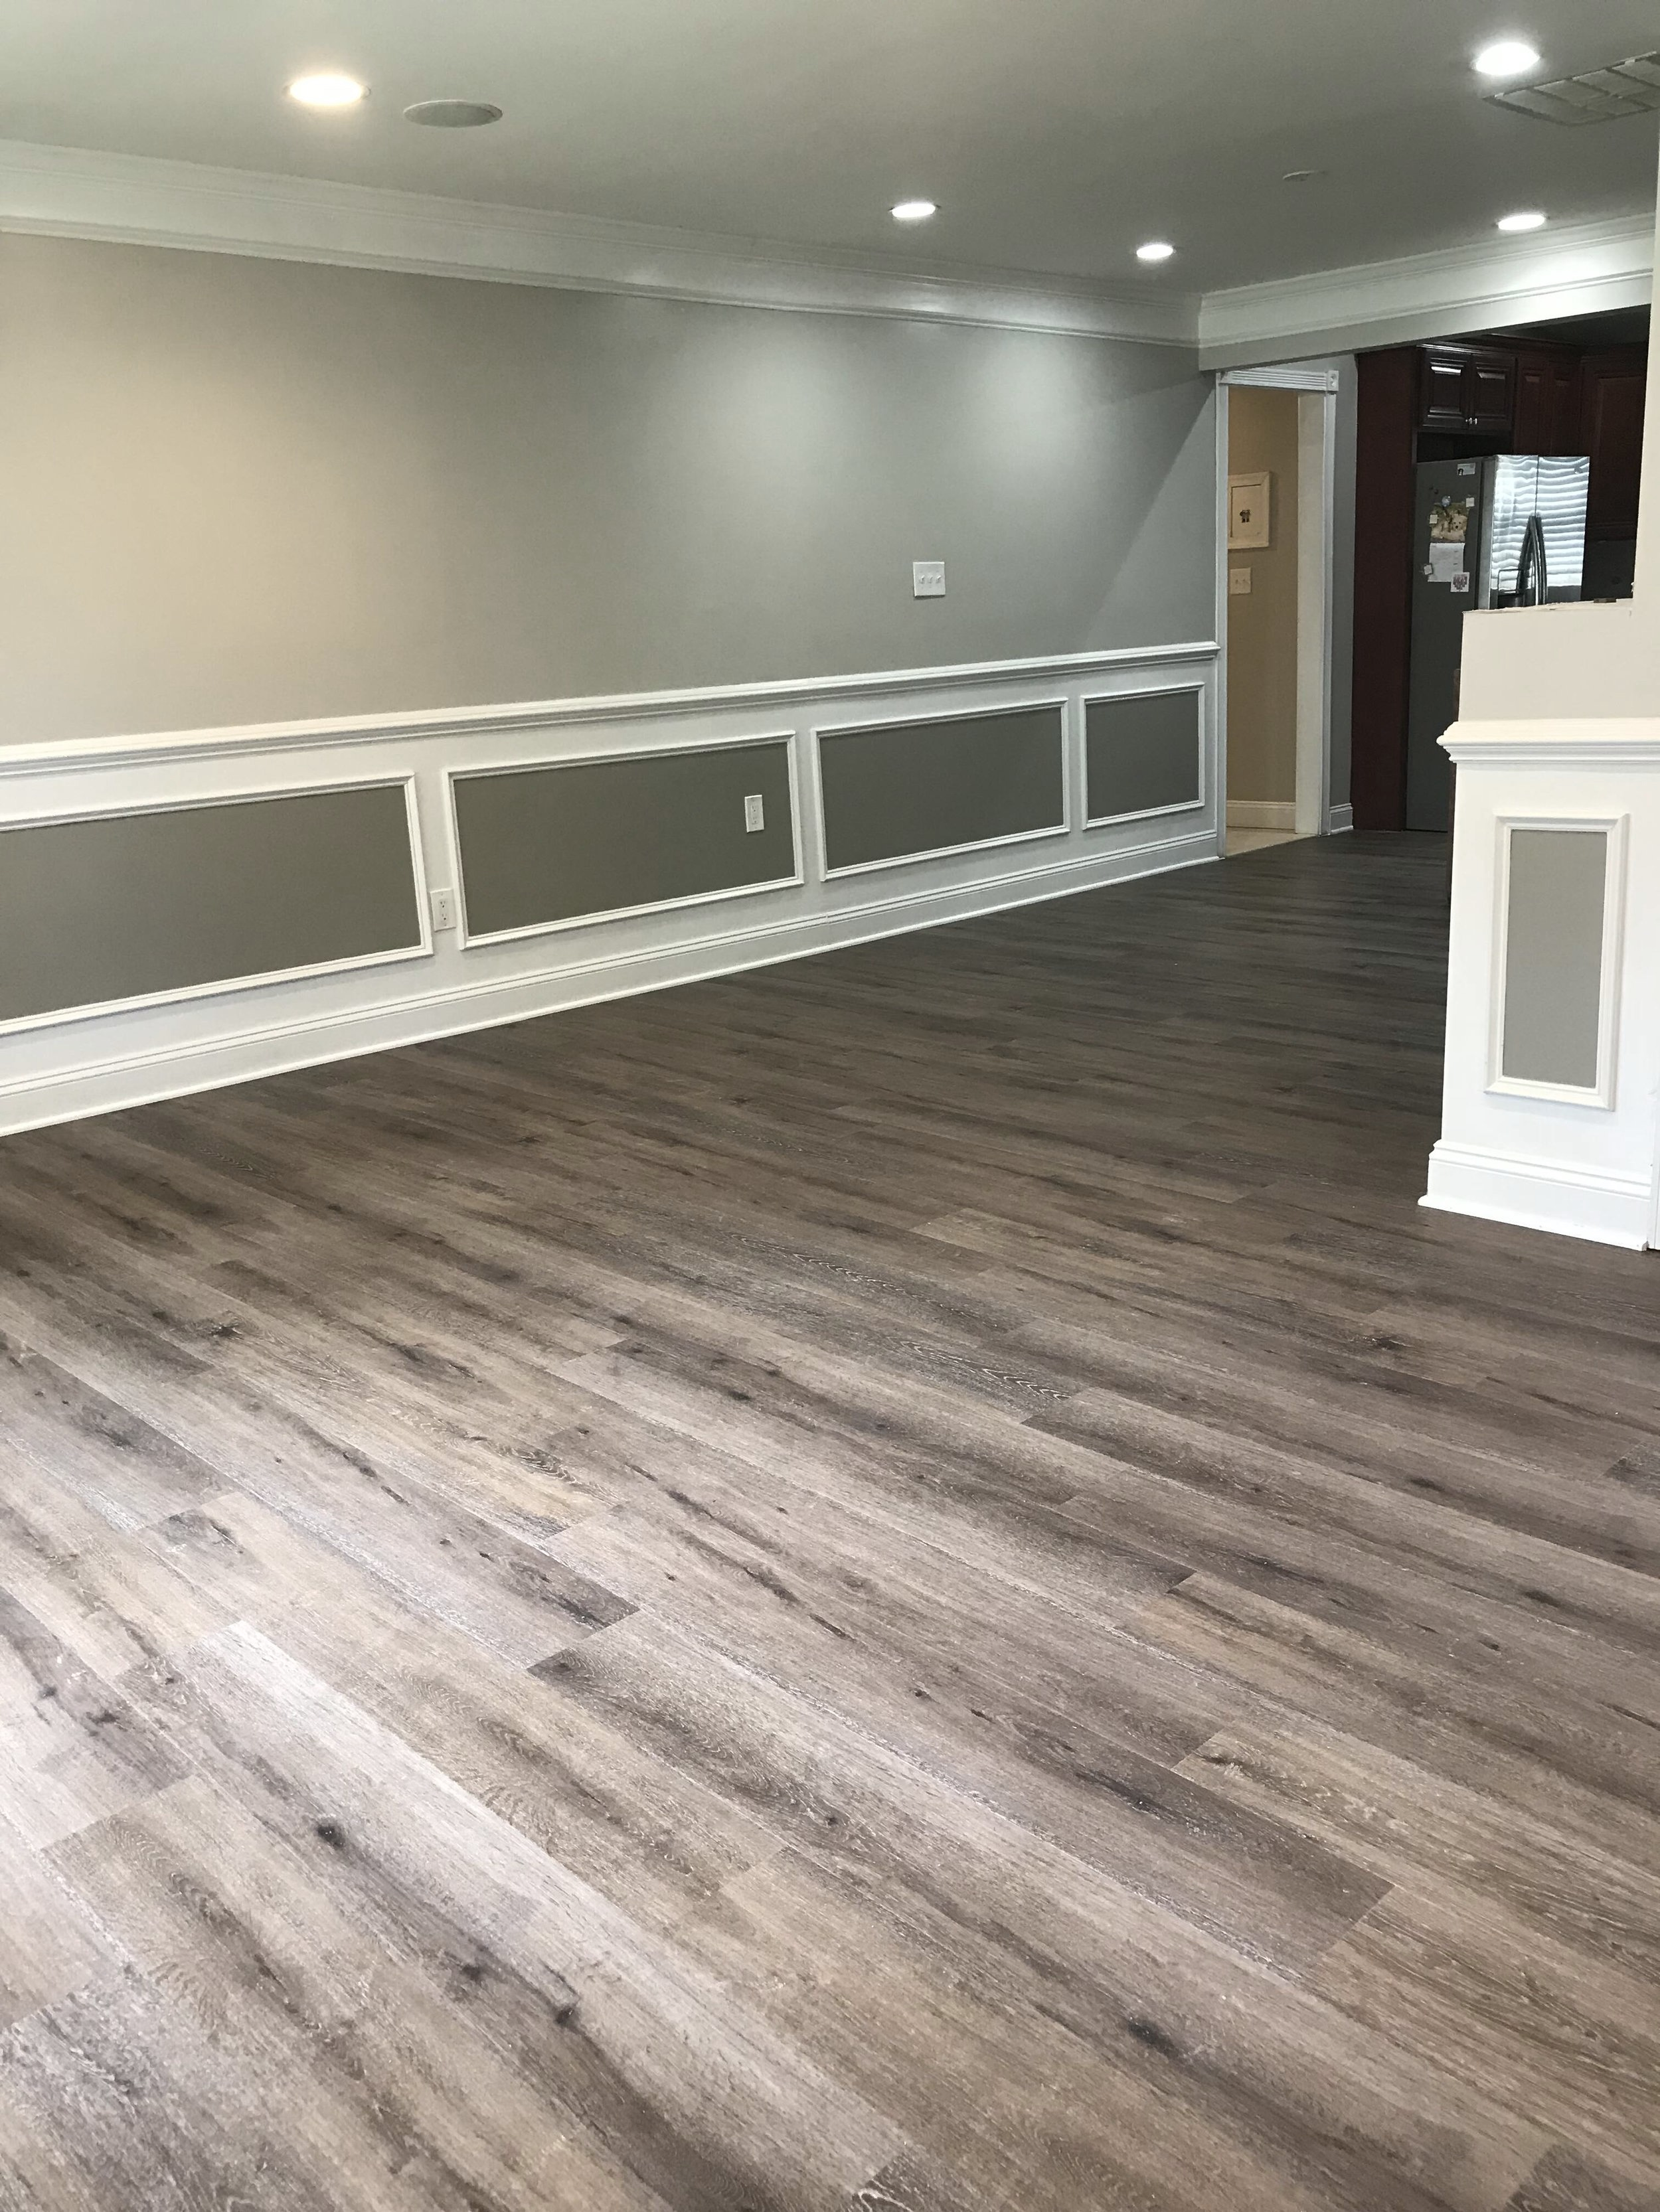 New LVT flooring installed in the living and dining areas, guest bedroom, and gym (below)